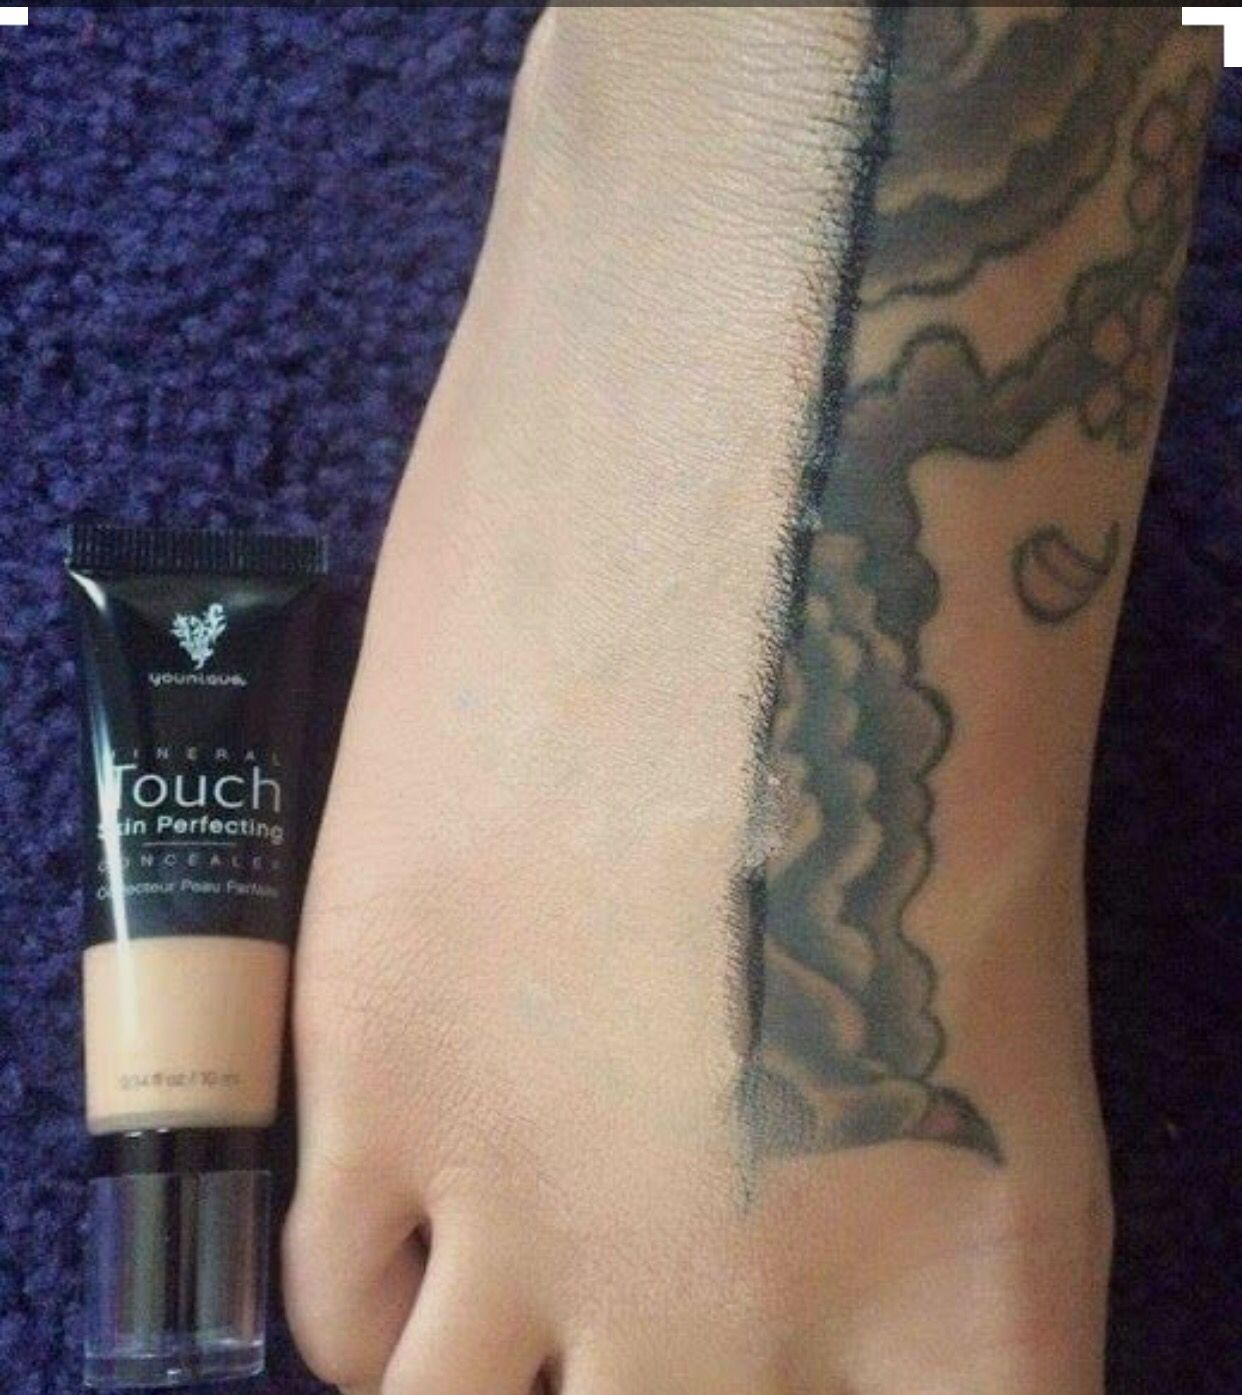 Touch Mineral Skin Perfecting Concealer Cover the flaws